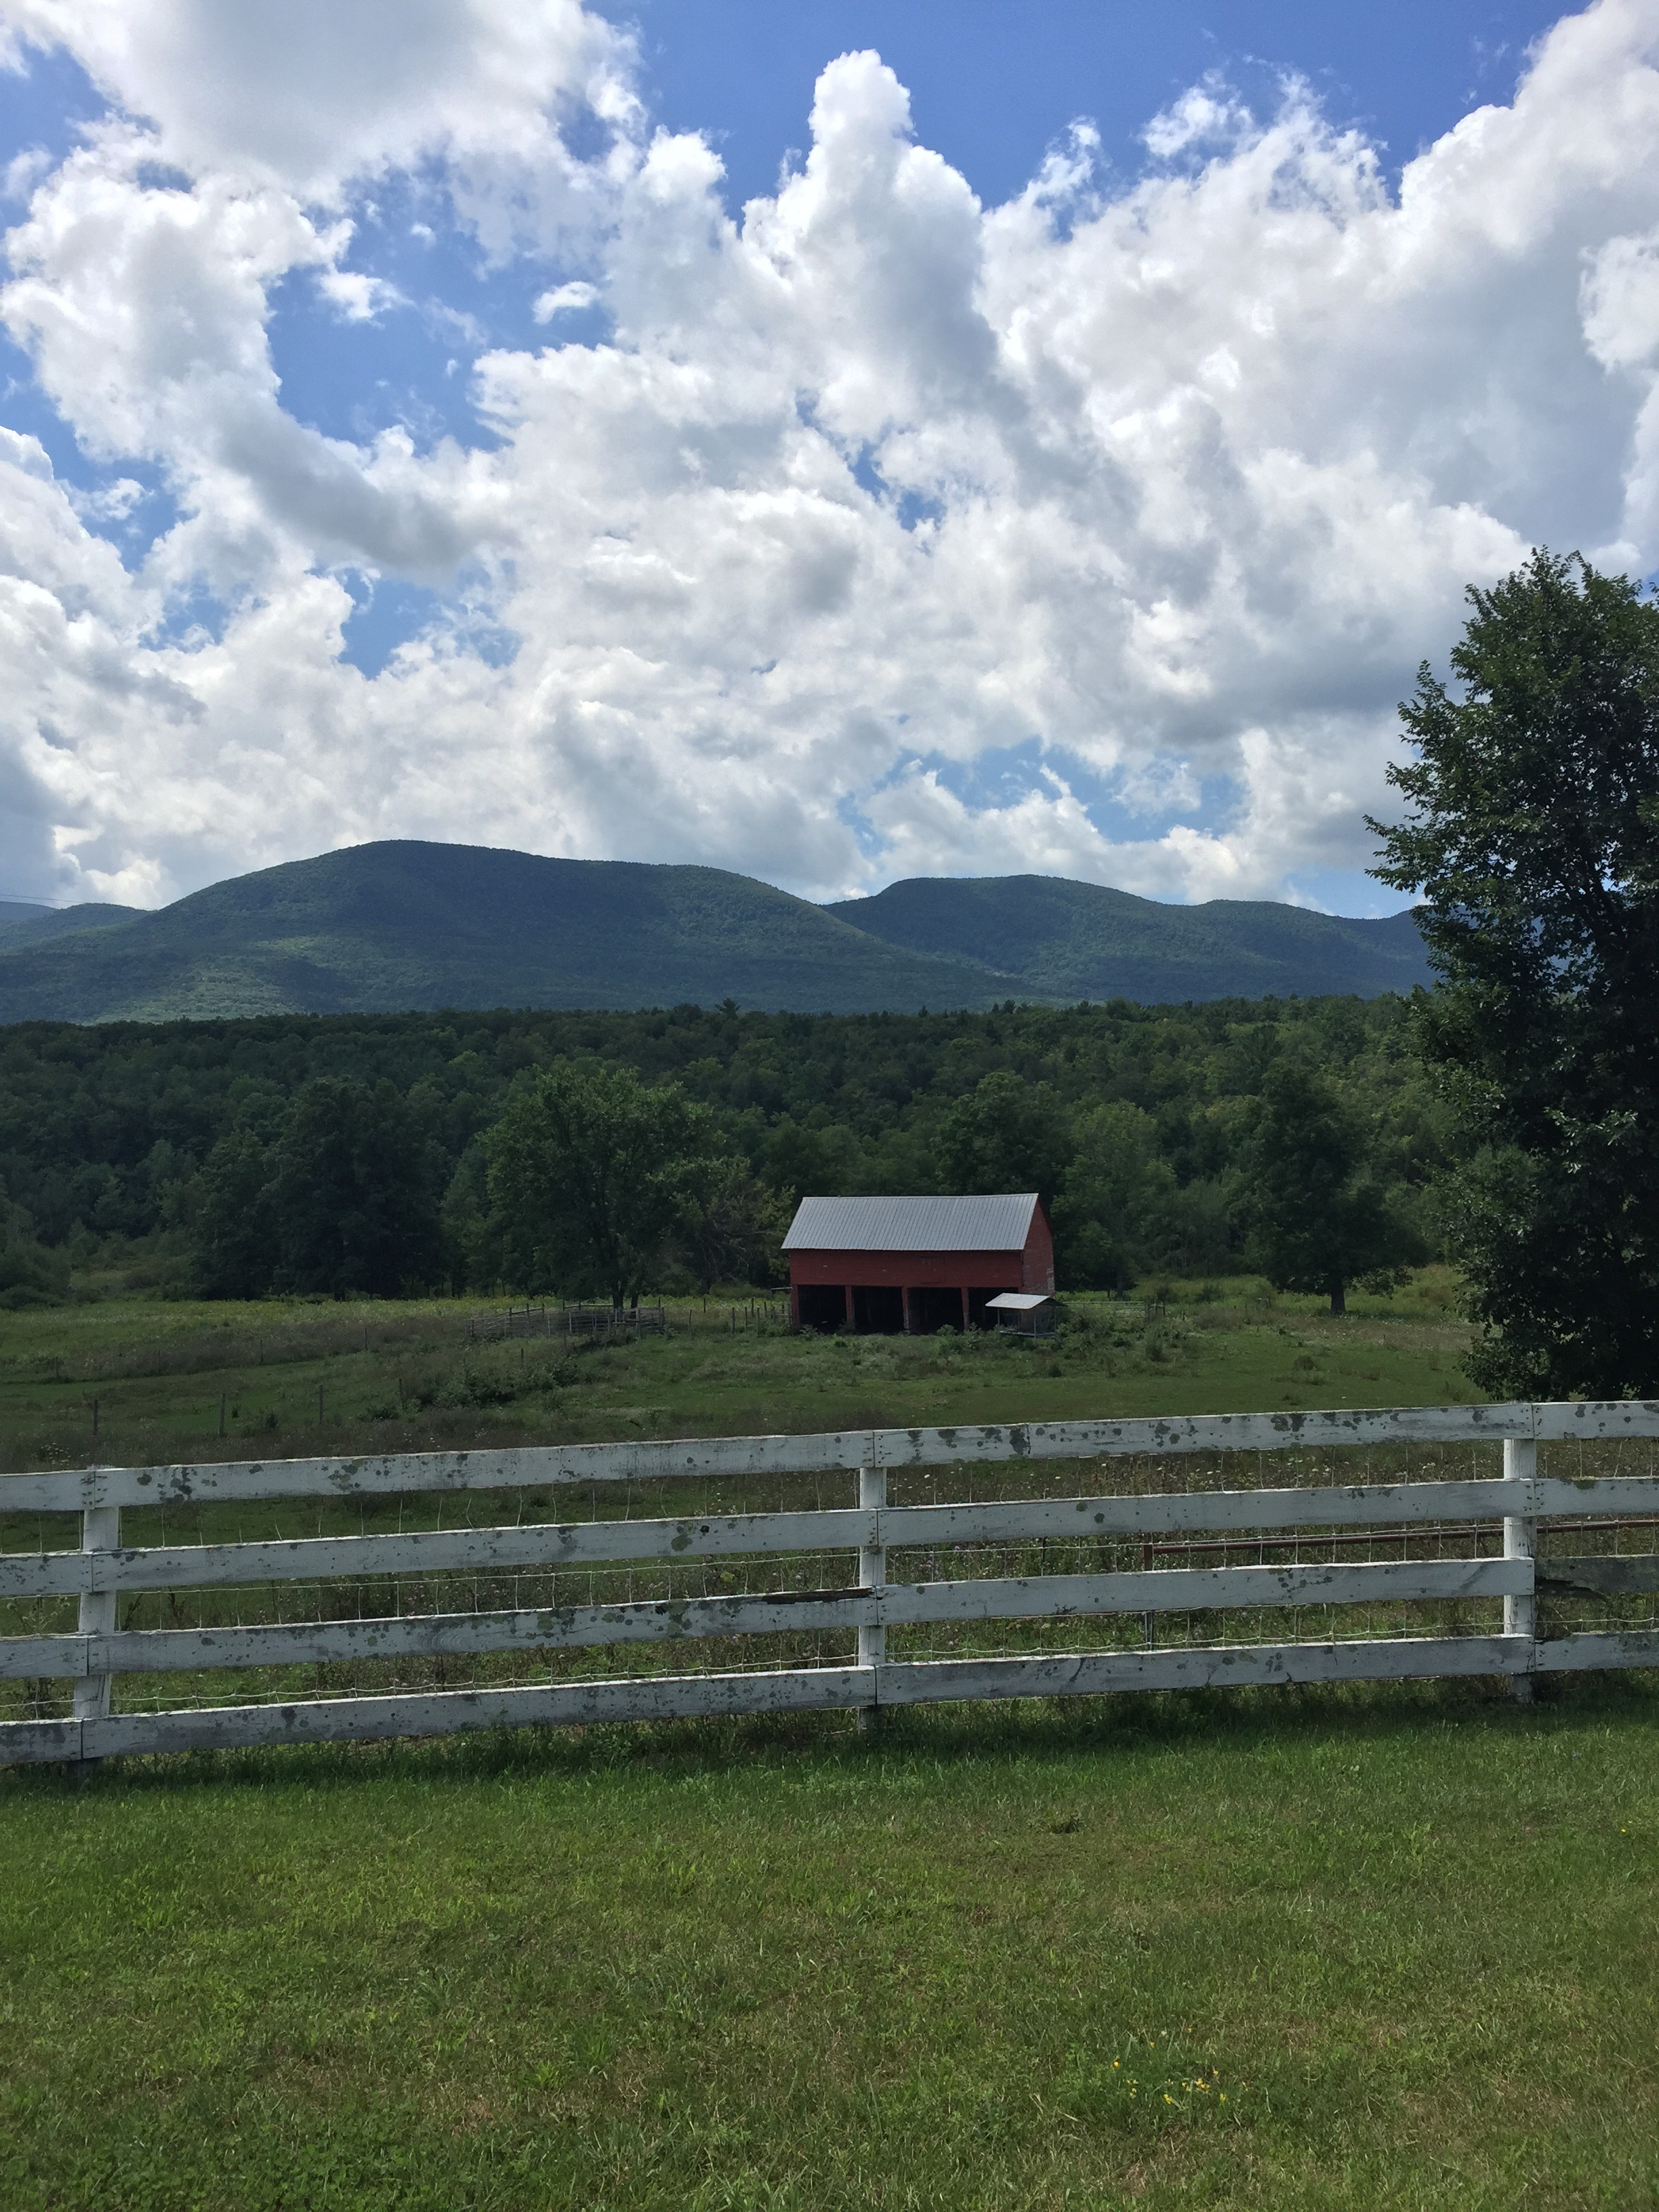 The Catskills do farm and mountain views extremely well. Once I got properly dropped I turned my attention to photographing.